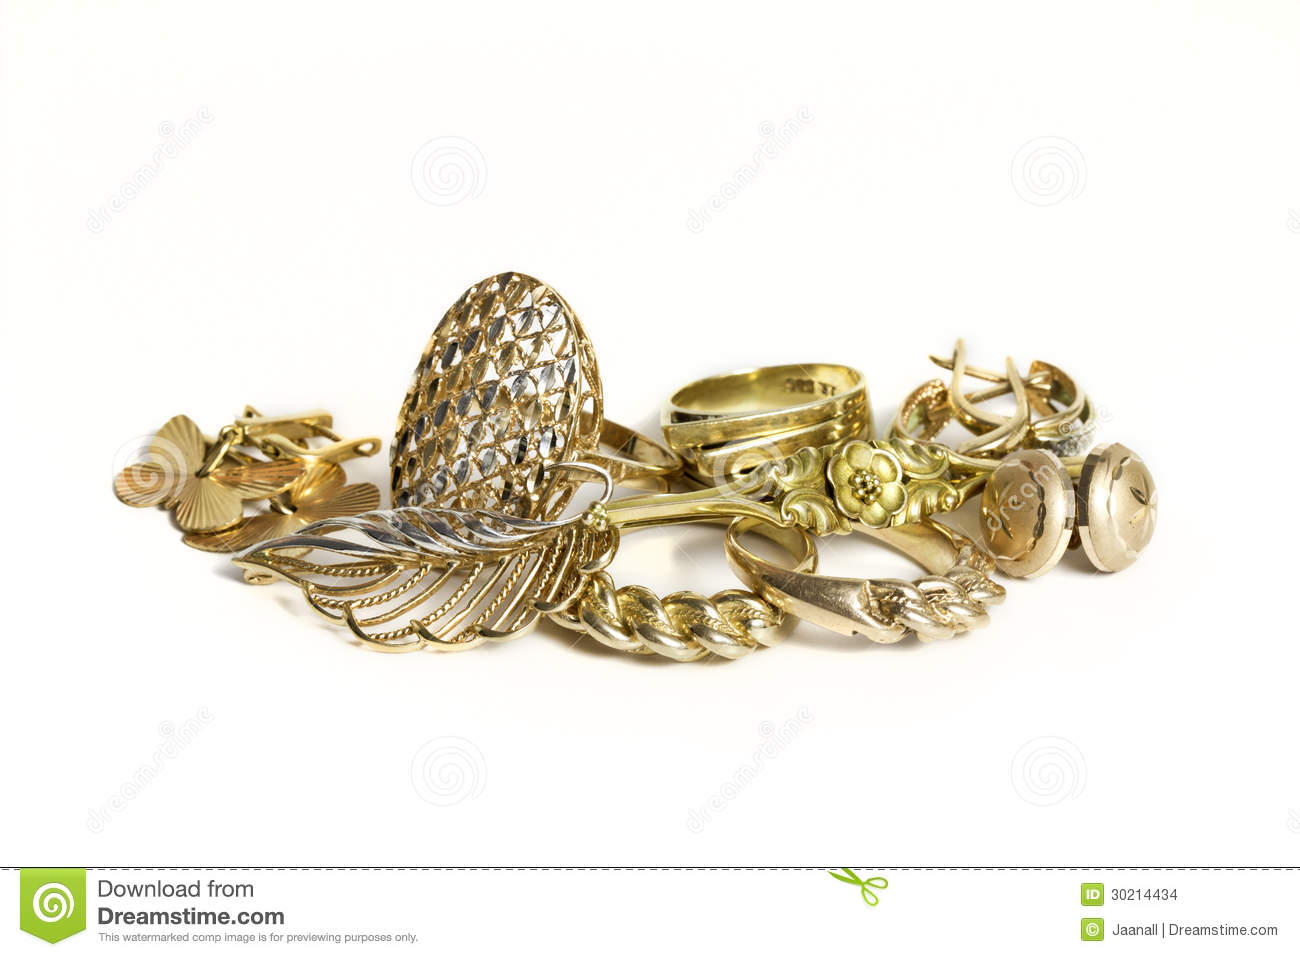 Gold jewellery stock photo. Image of metallic, hallmark - 30214434